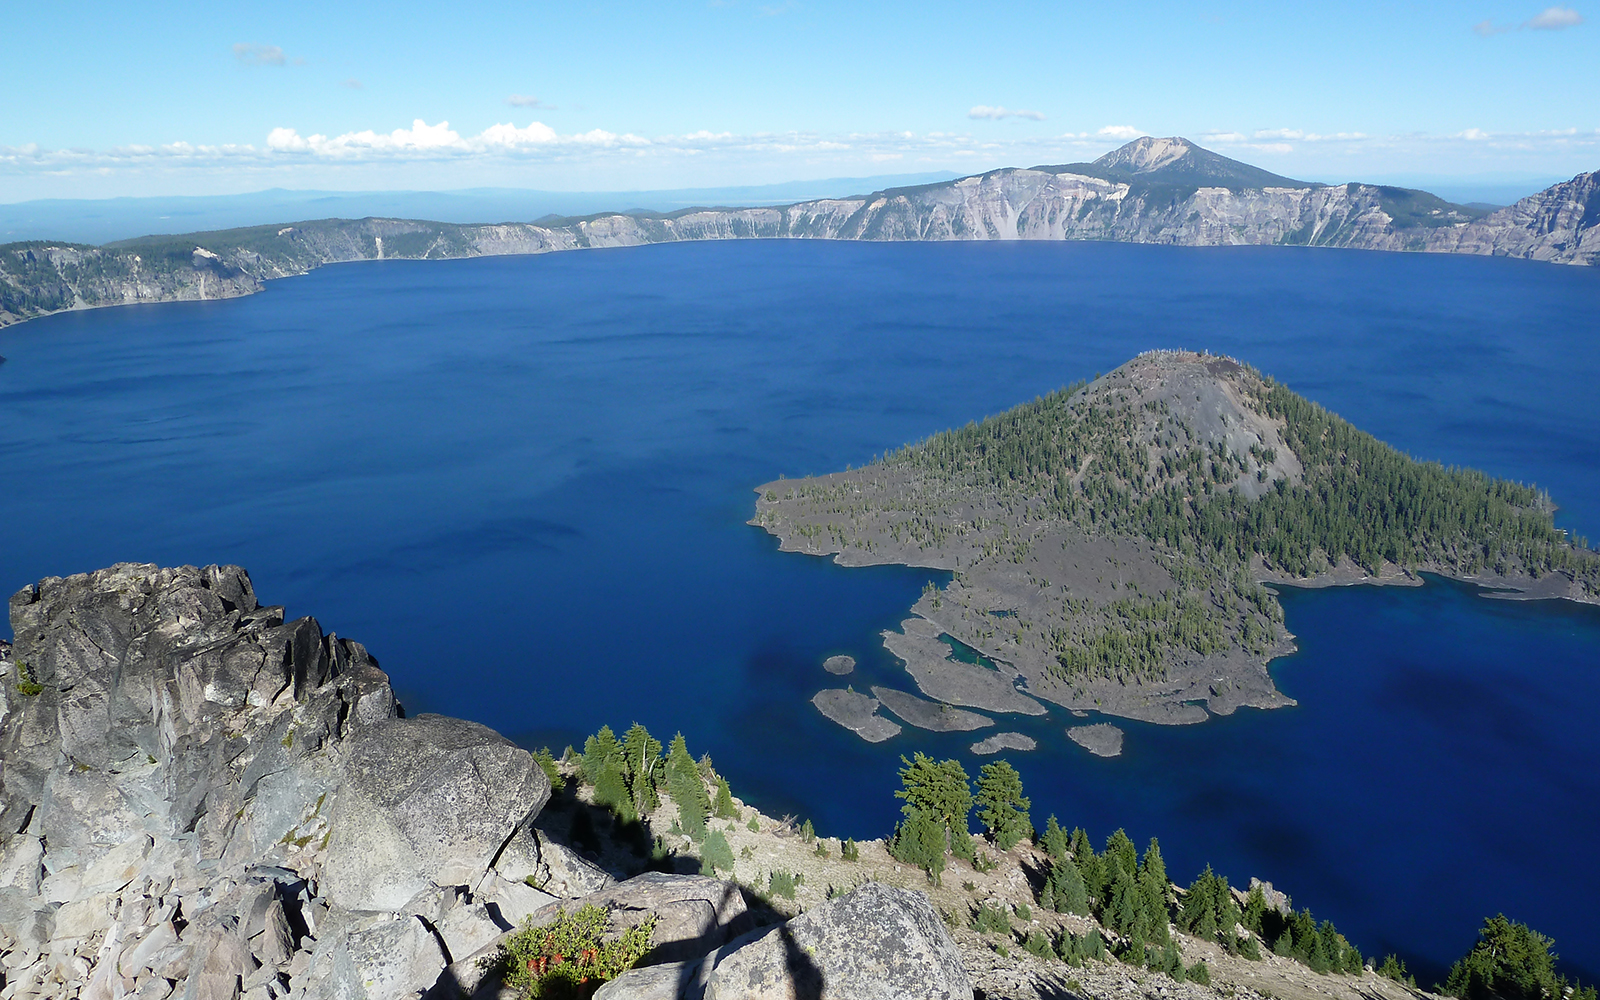 Best U.S. National Park Views: Watchman Peak, Crater Lake National Park